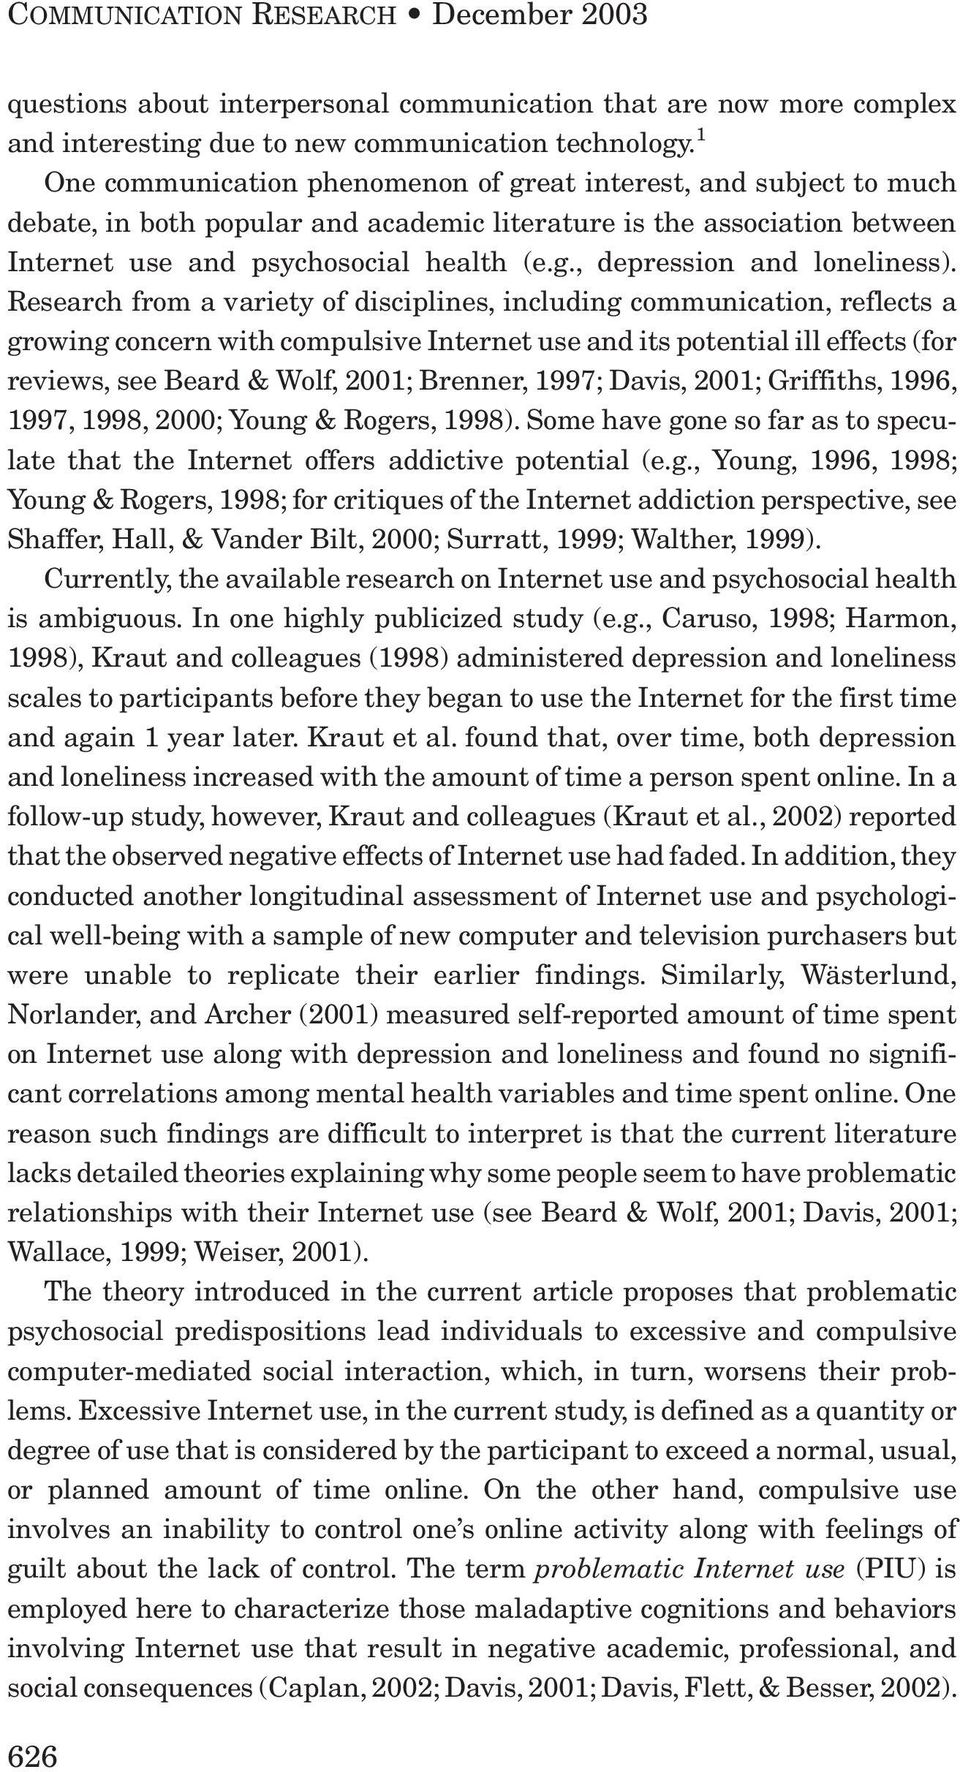 Research from a variety of disciplines, including communication, reflects a growing concern with compulsive Internet use and its potential ill effects (for reviews, see Beard & Wolf, 2001; Brenner,